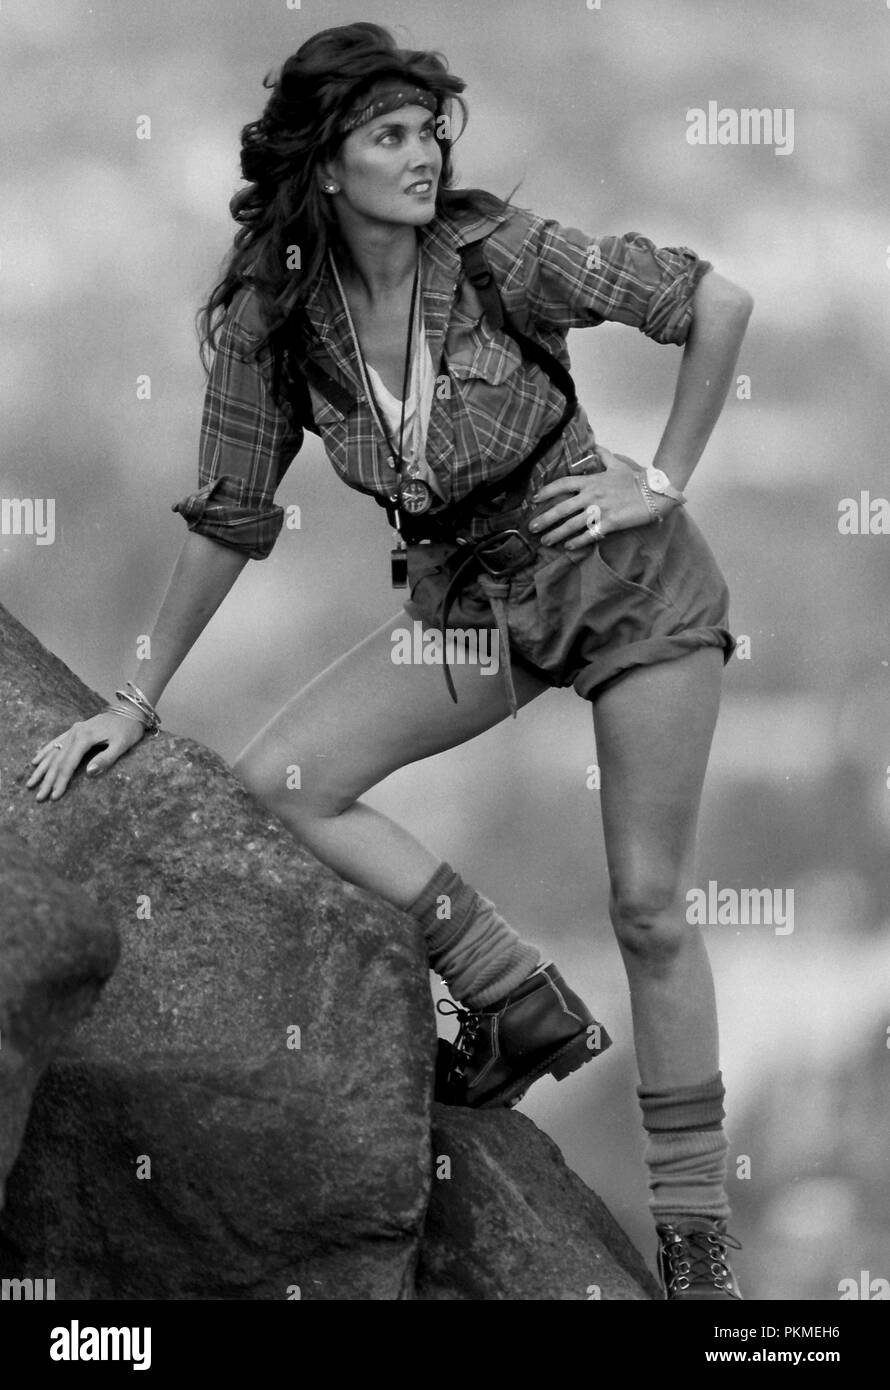 Ilkley Moor, Yorkshire, UK. 1st October 1984. Bond girl Caroline Munro in a shot from autumn 1984 models on Yorkshire's famous Ilkley Moor. Caroline featured in The Spy Who Loved Me, and At The Earth's Core and numerous scream queen films. - Stock Image